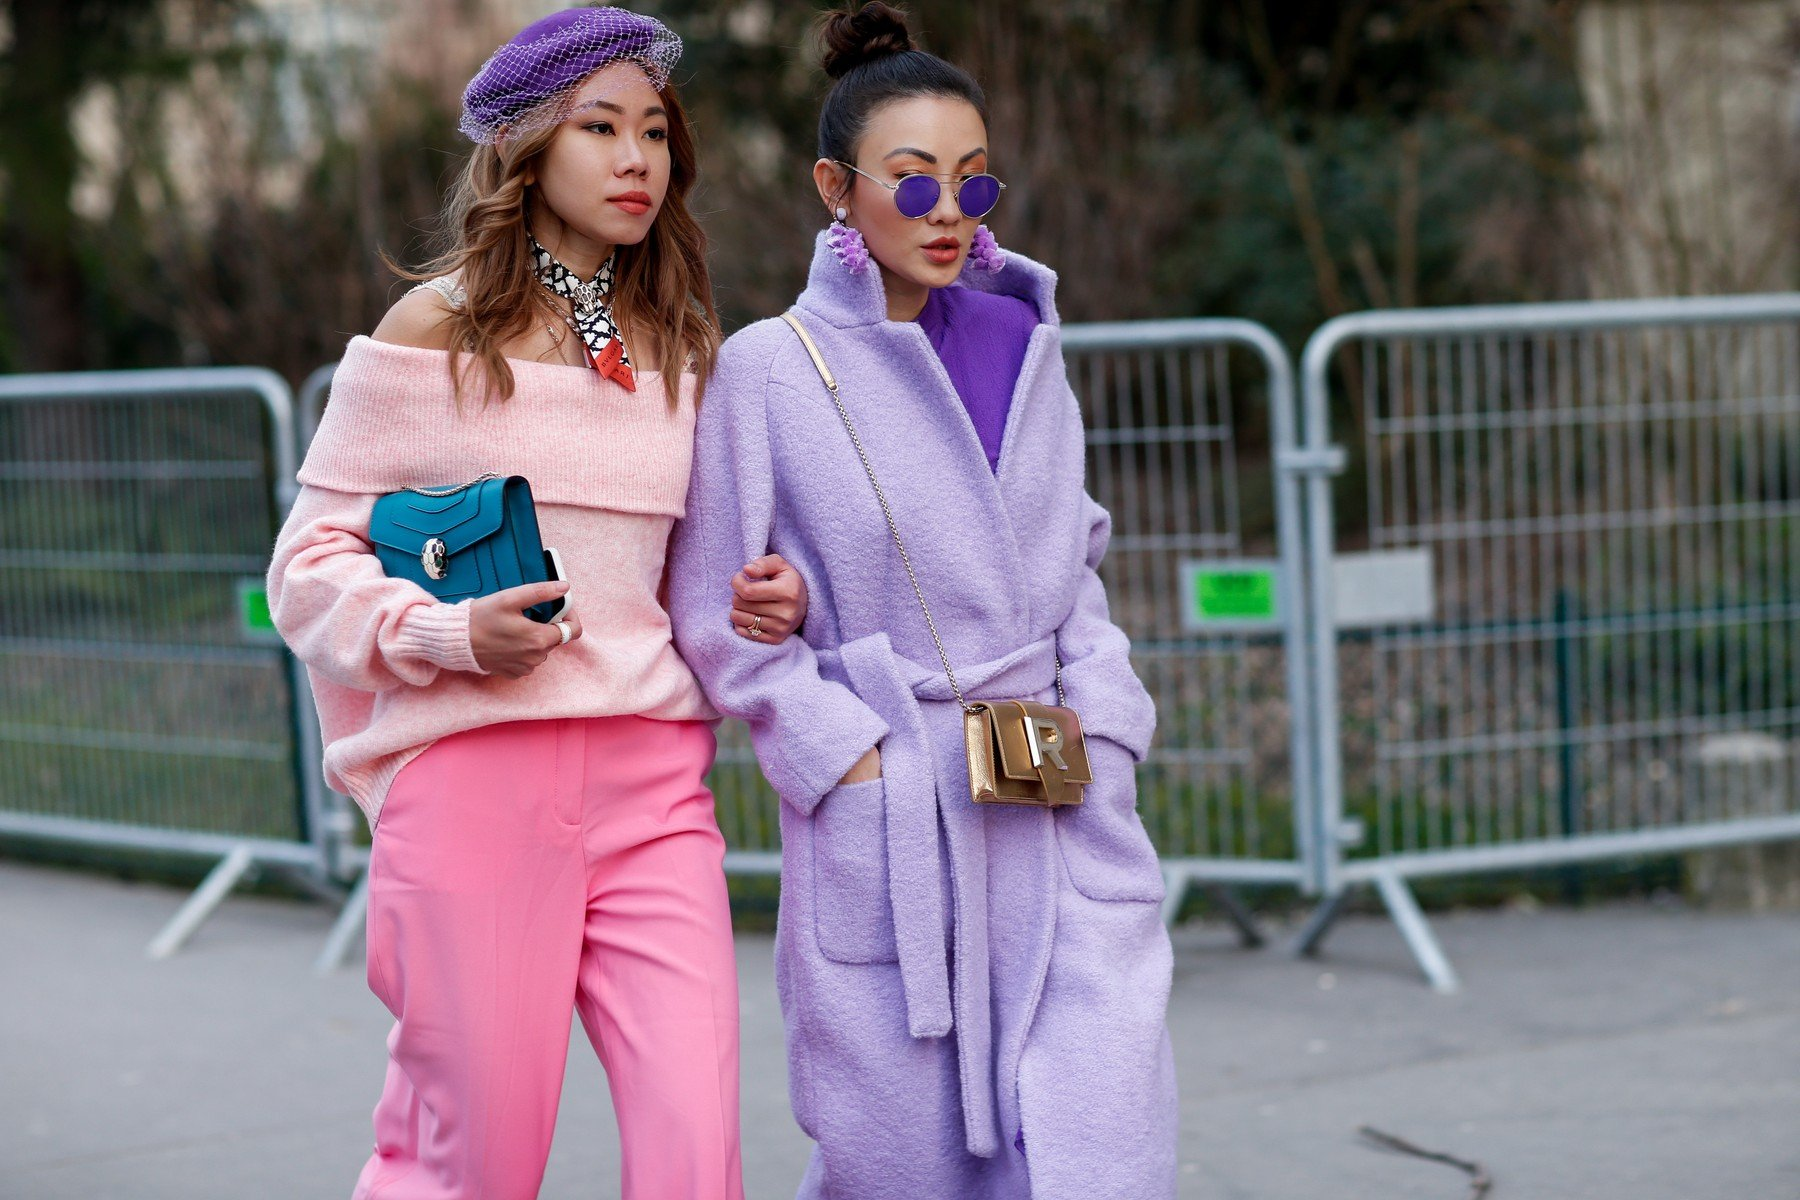 Street style, arriving at Rochas Fall-Winter 2018-2019 show held at Grand Palais in Paris, France, on February 28, 2018., Image: 364759968, License: Rights-managed, Restrictions: , Model Release: no, Credit line: Profimedia, Abaca